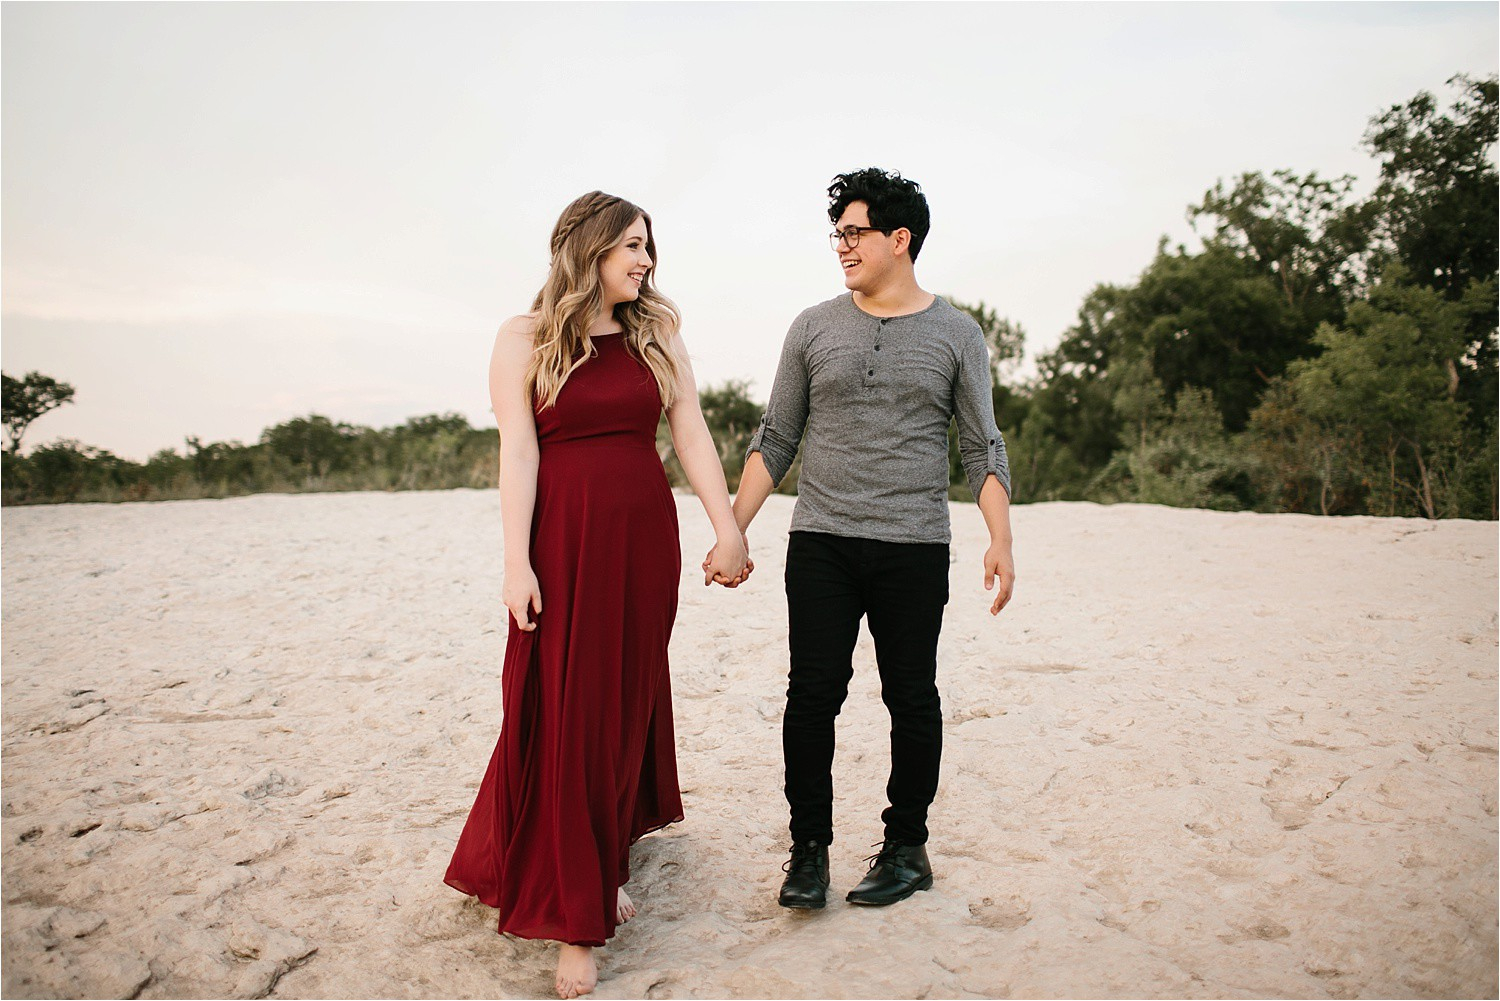 Romantic Austin, Texas Engagement Session with outfit inspiration + flowy red dress from Lulu's at Mckinney Falls State Park by North Texas Wedding Photographer, Rachel Meagan Photography __ 42